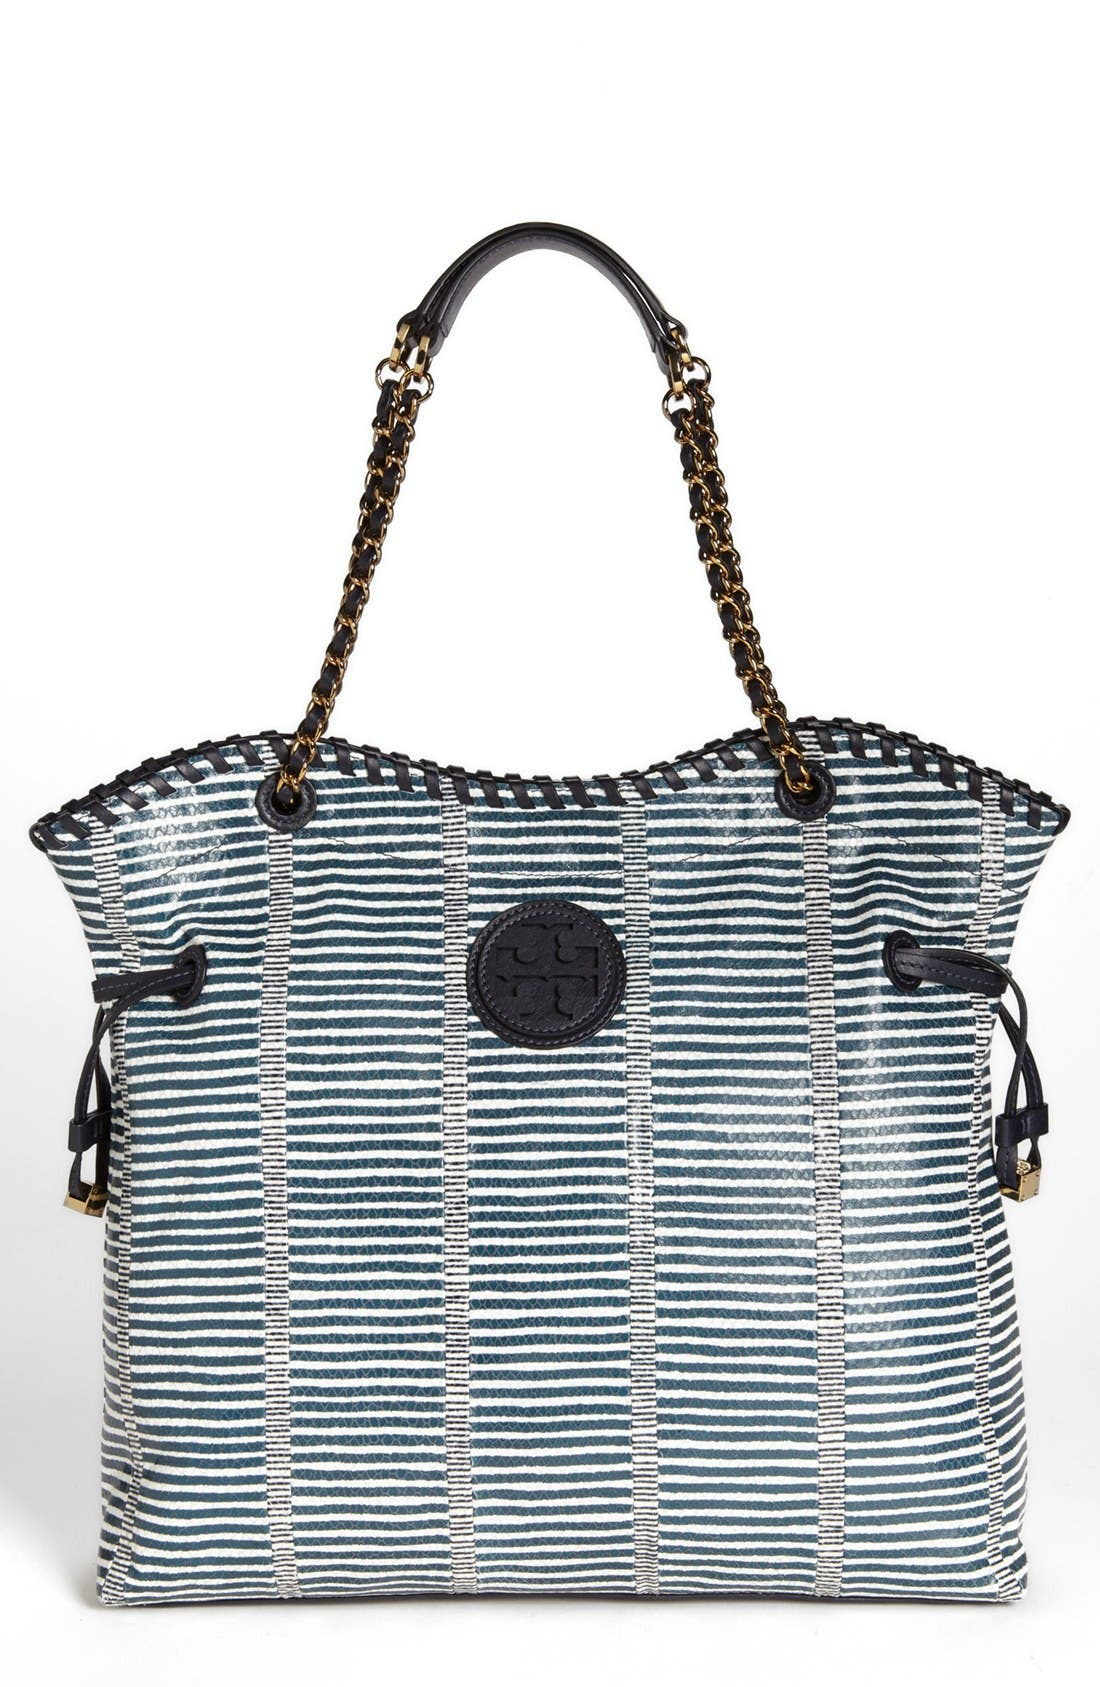 Alternate Image 1 Selected - Tory Burch 'Marion Patchwork' Leather Tote